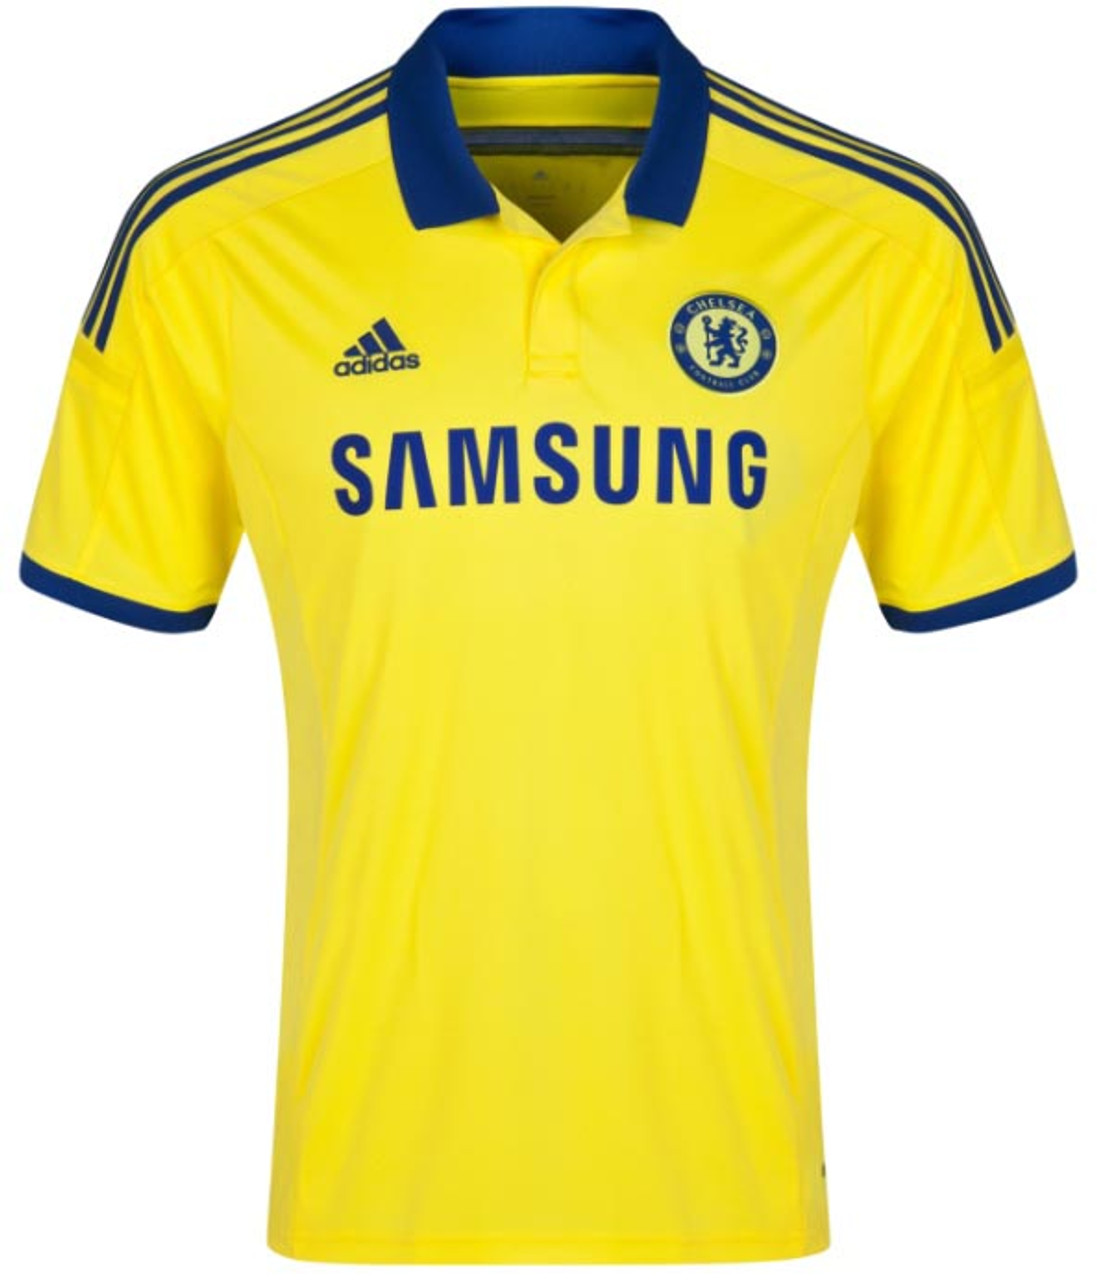 8e74b22e20f ADIDAS CHELSEA 2015 AWAY JERSEY YELLOW - Soccer Plus